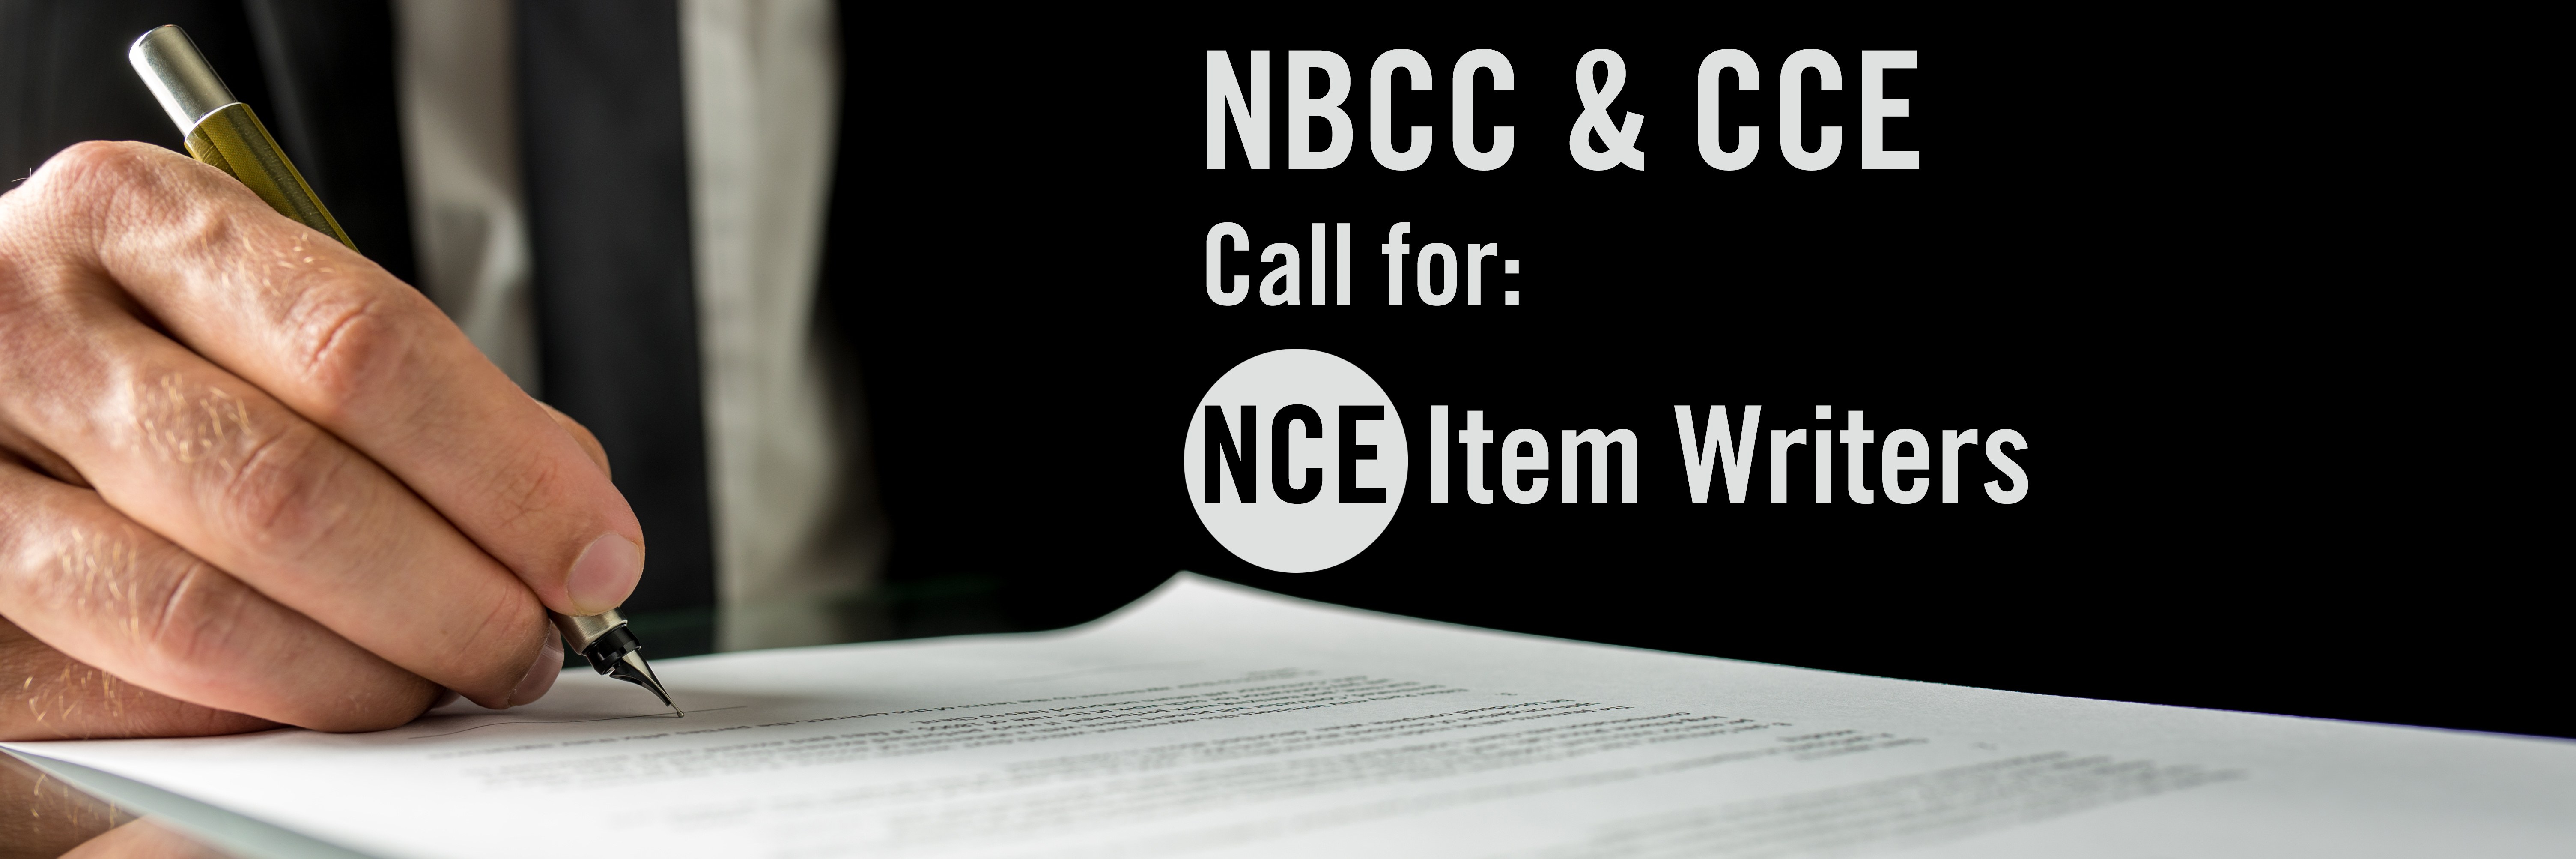 Call for: NCE Item Writers